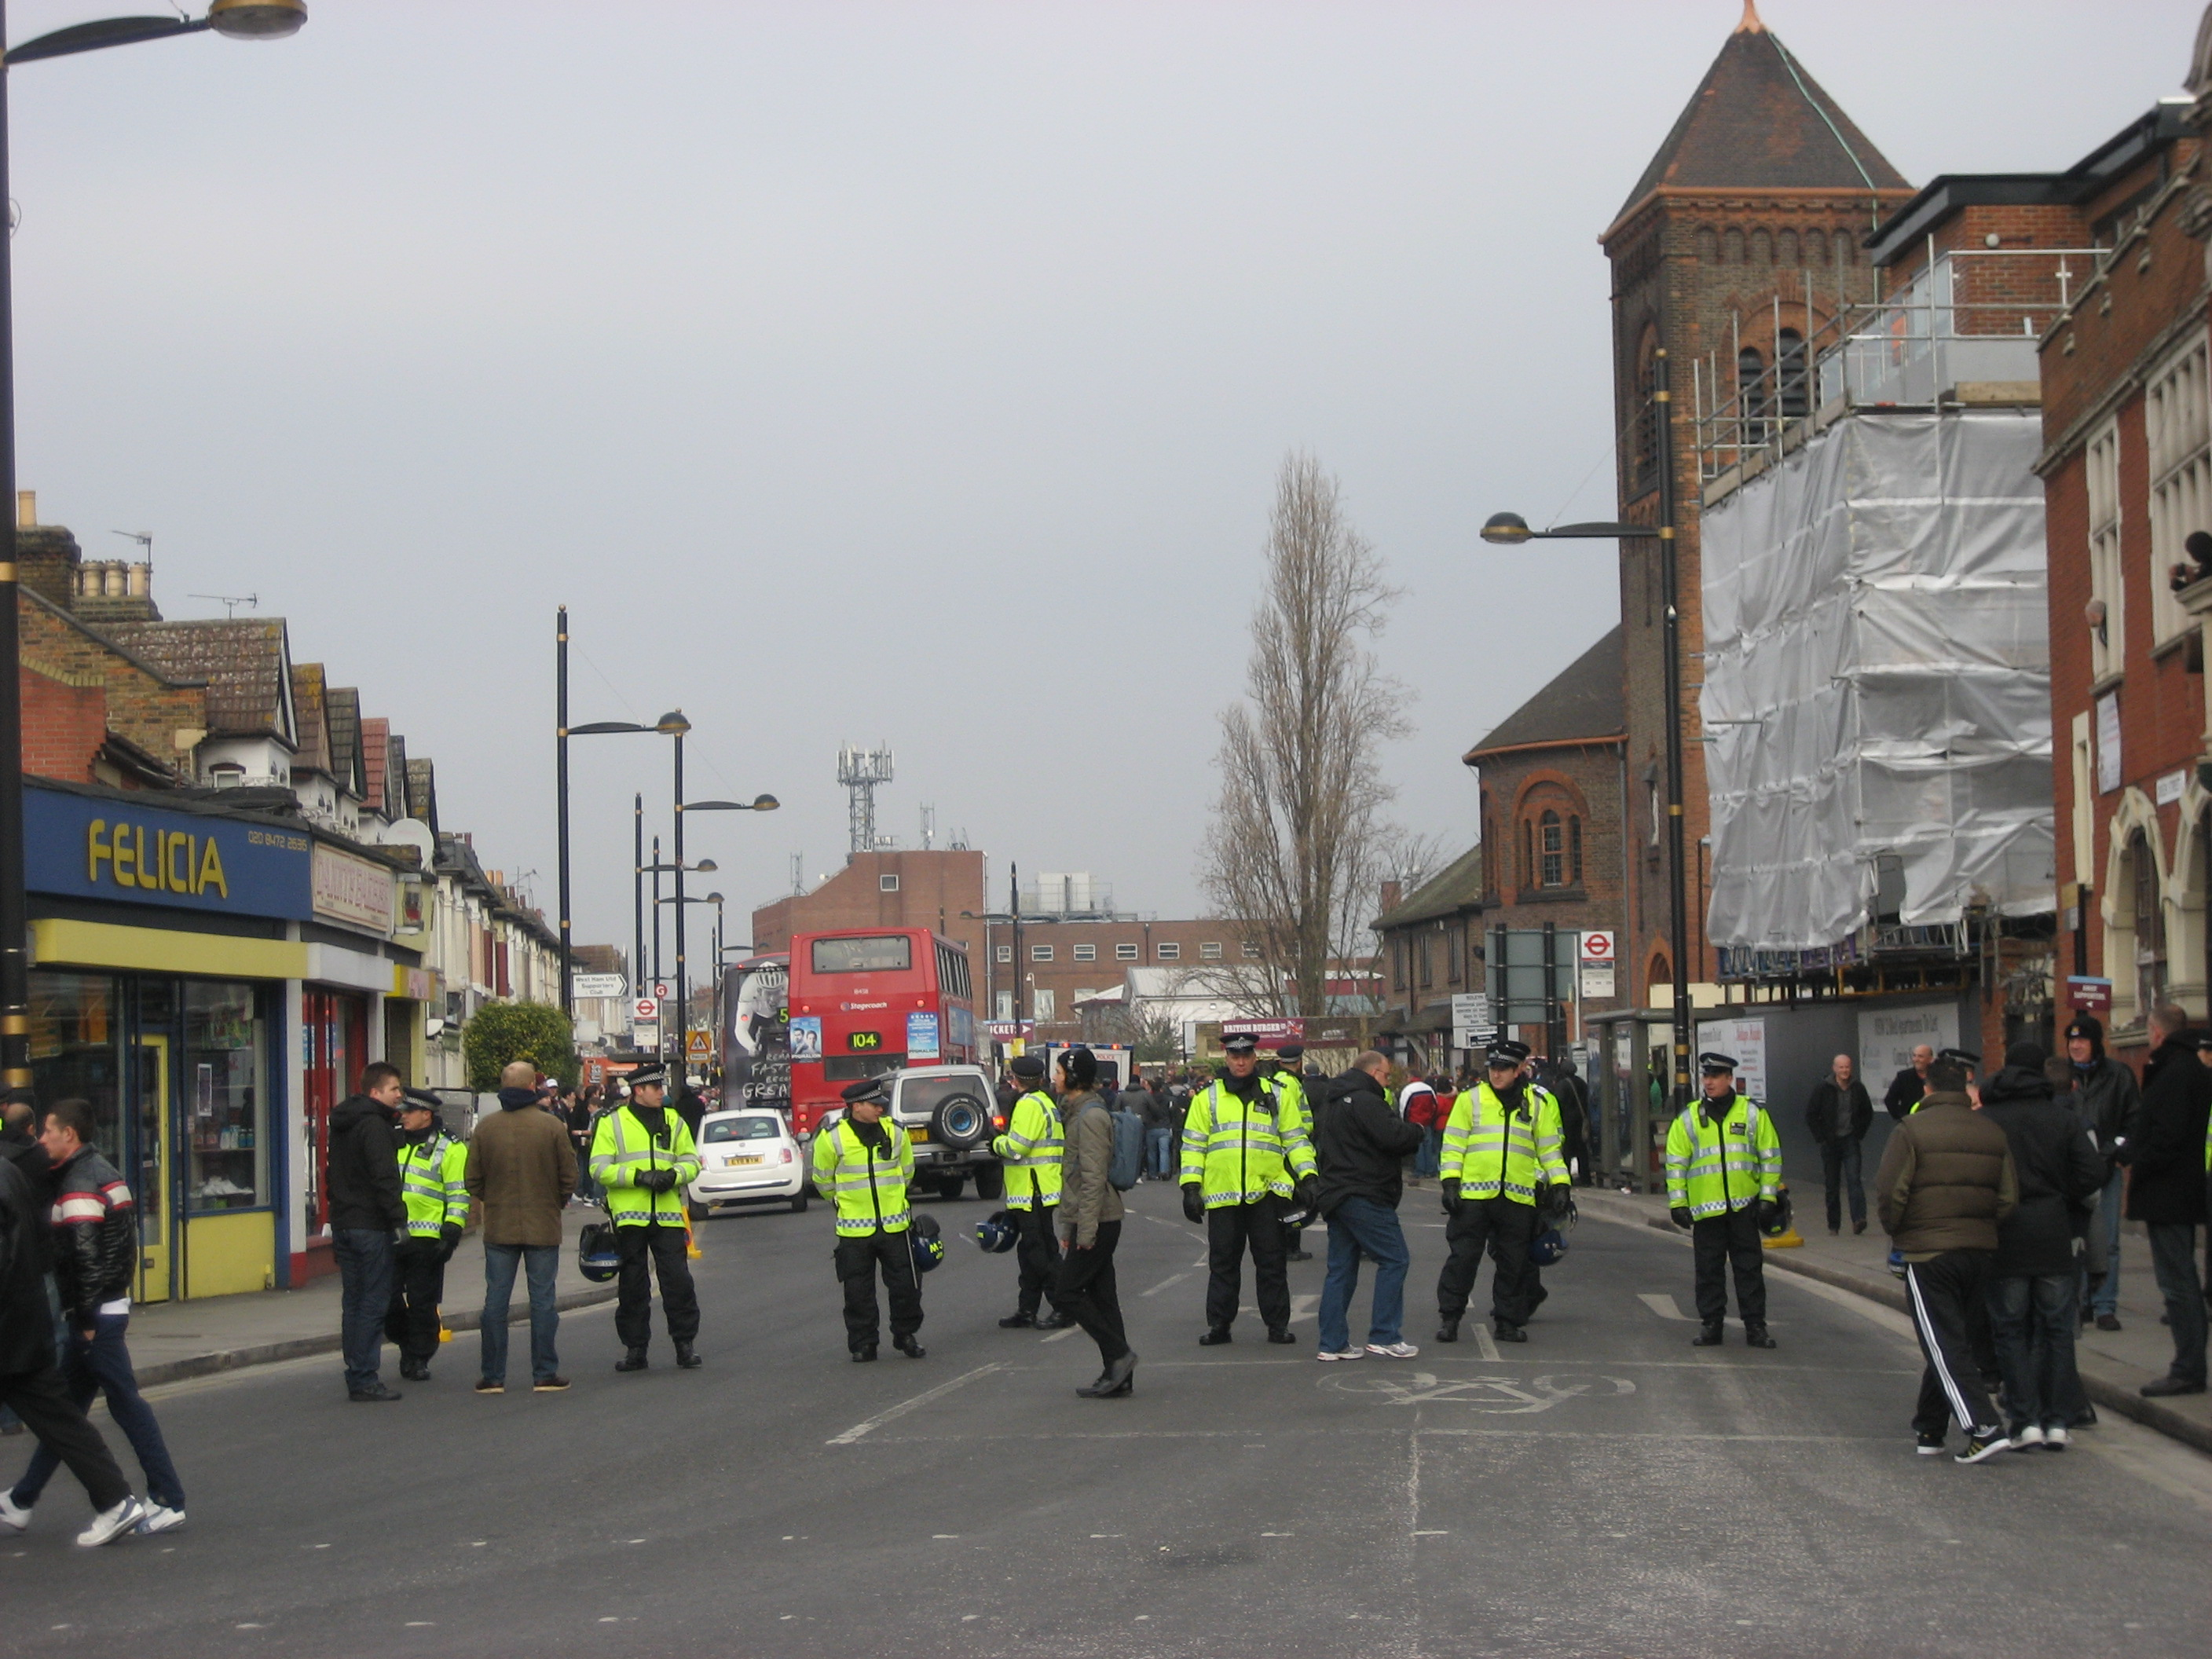 Police lining Green Street before the match